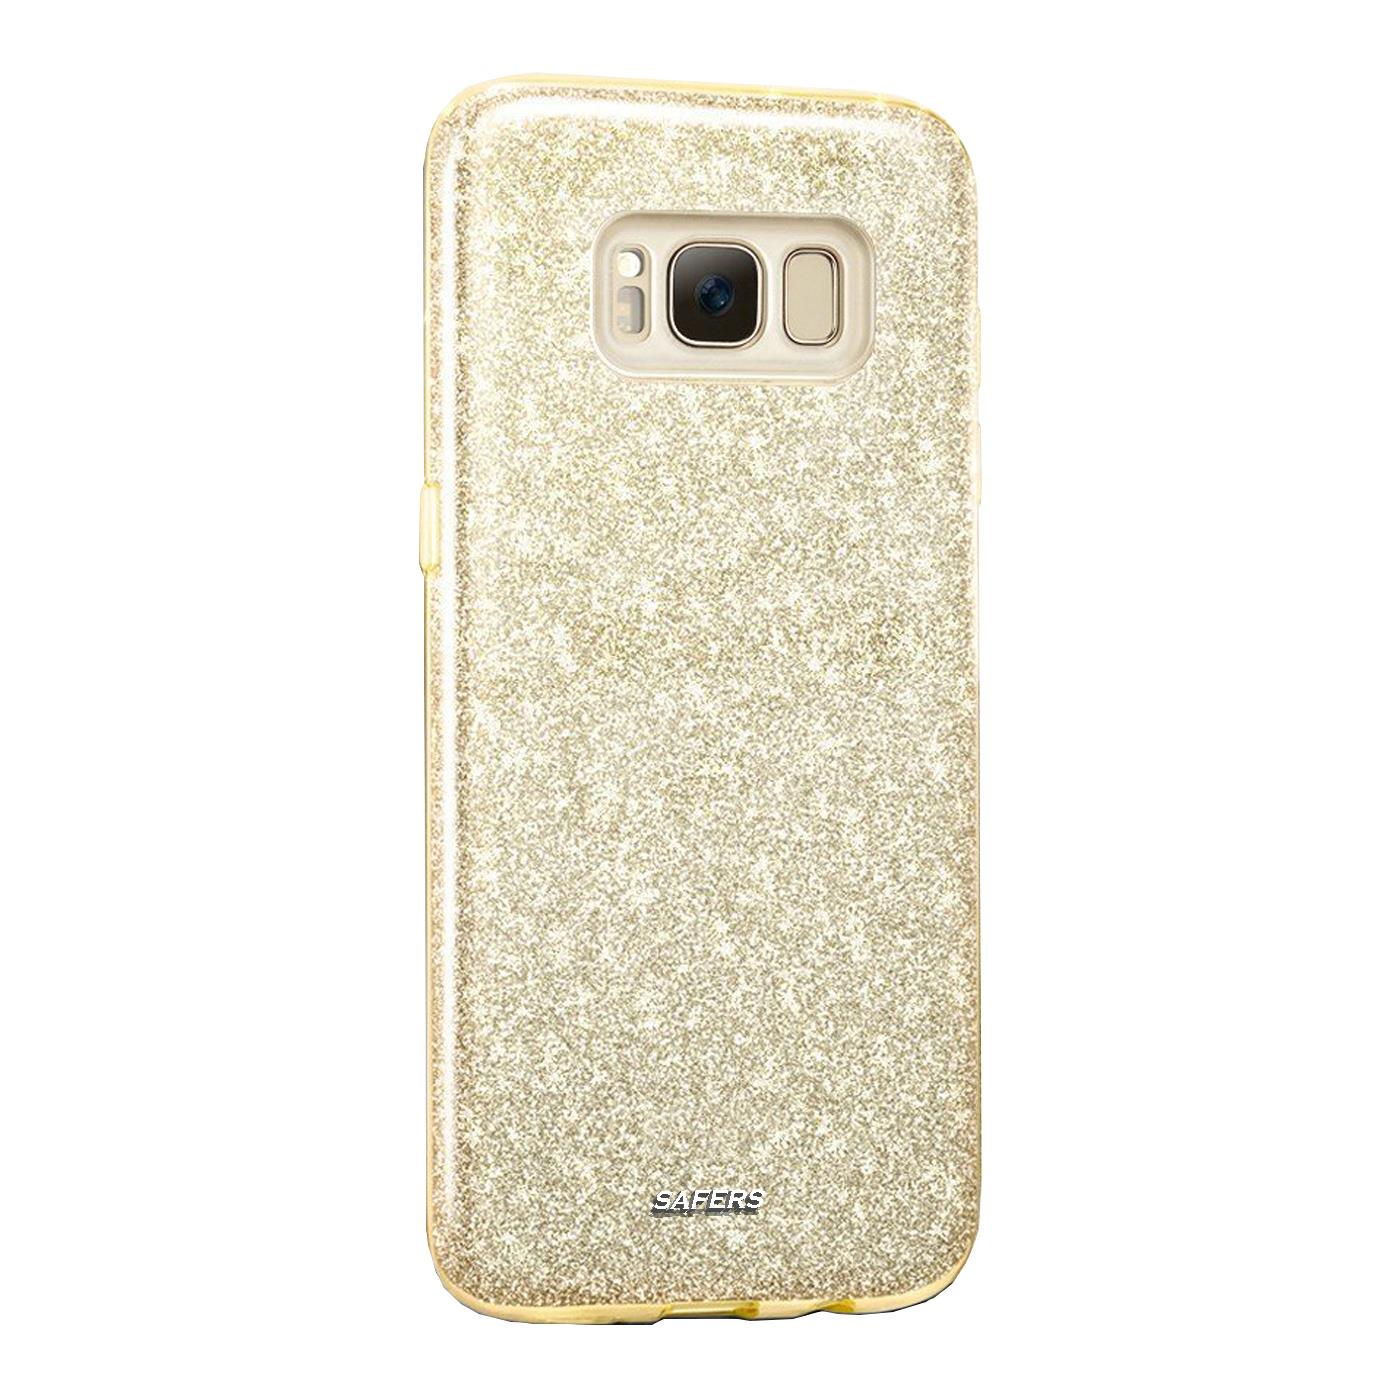 Phone-Glitter-Case-for-Samsung-Galaxy-Slim-TPU-Cover-Silicone-Protective thumbnail 5